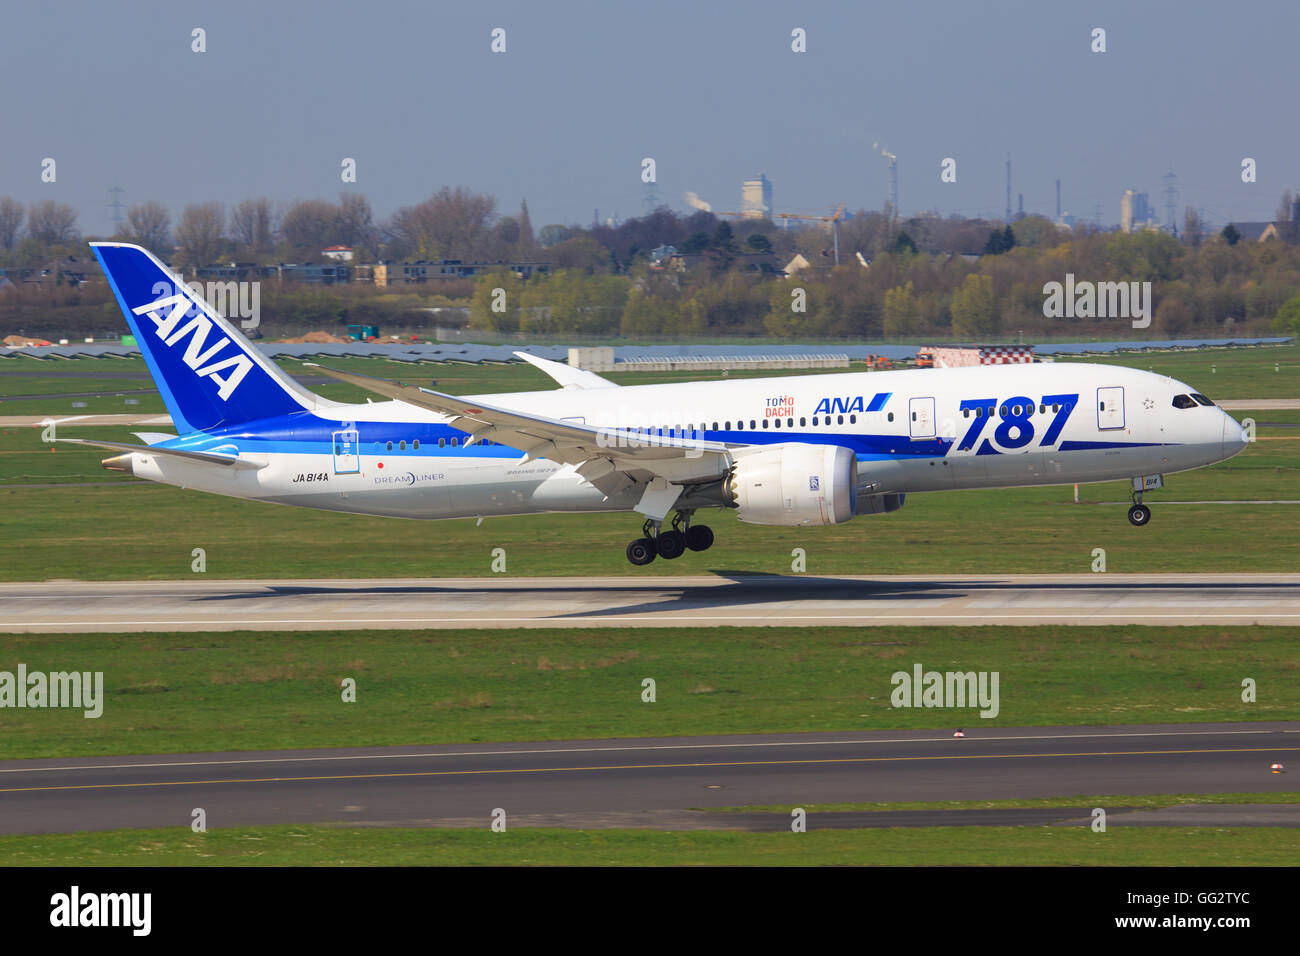 Düsseldorf/Germany April 9, 2016: Boeing 787 from ANA taxing at Düsseldorf Airport - Stock Image